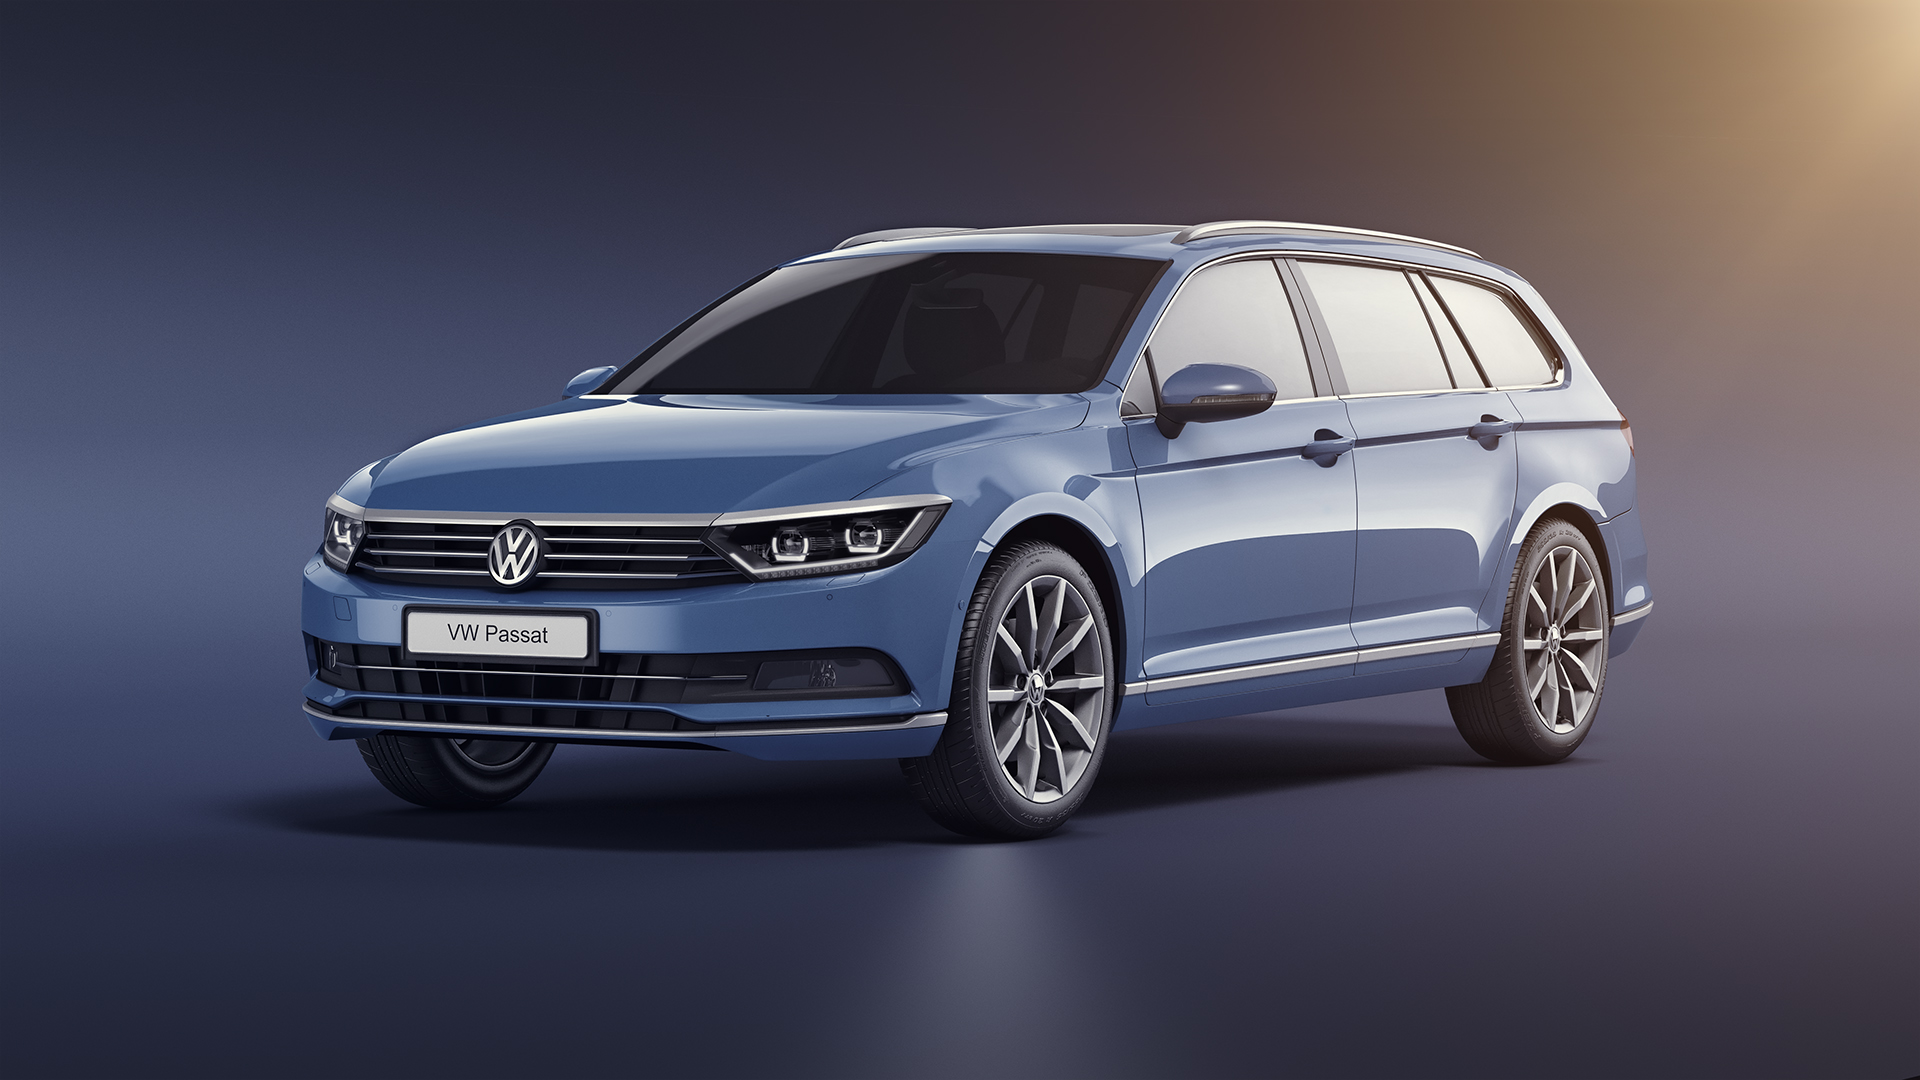 volkswagen passat variant 2015 grafik 3d micha szyma ski. Black Bedroom Furniture Sets. Home Design Ideas